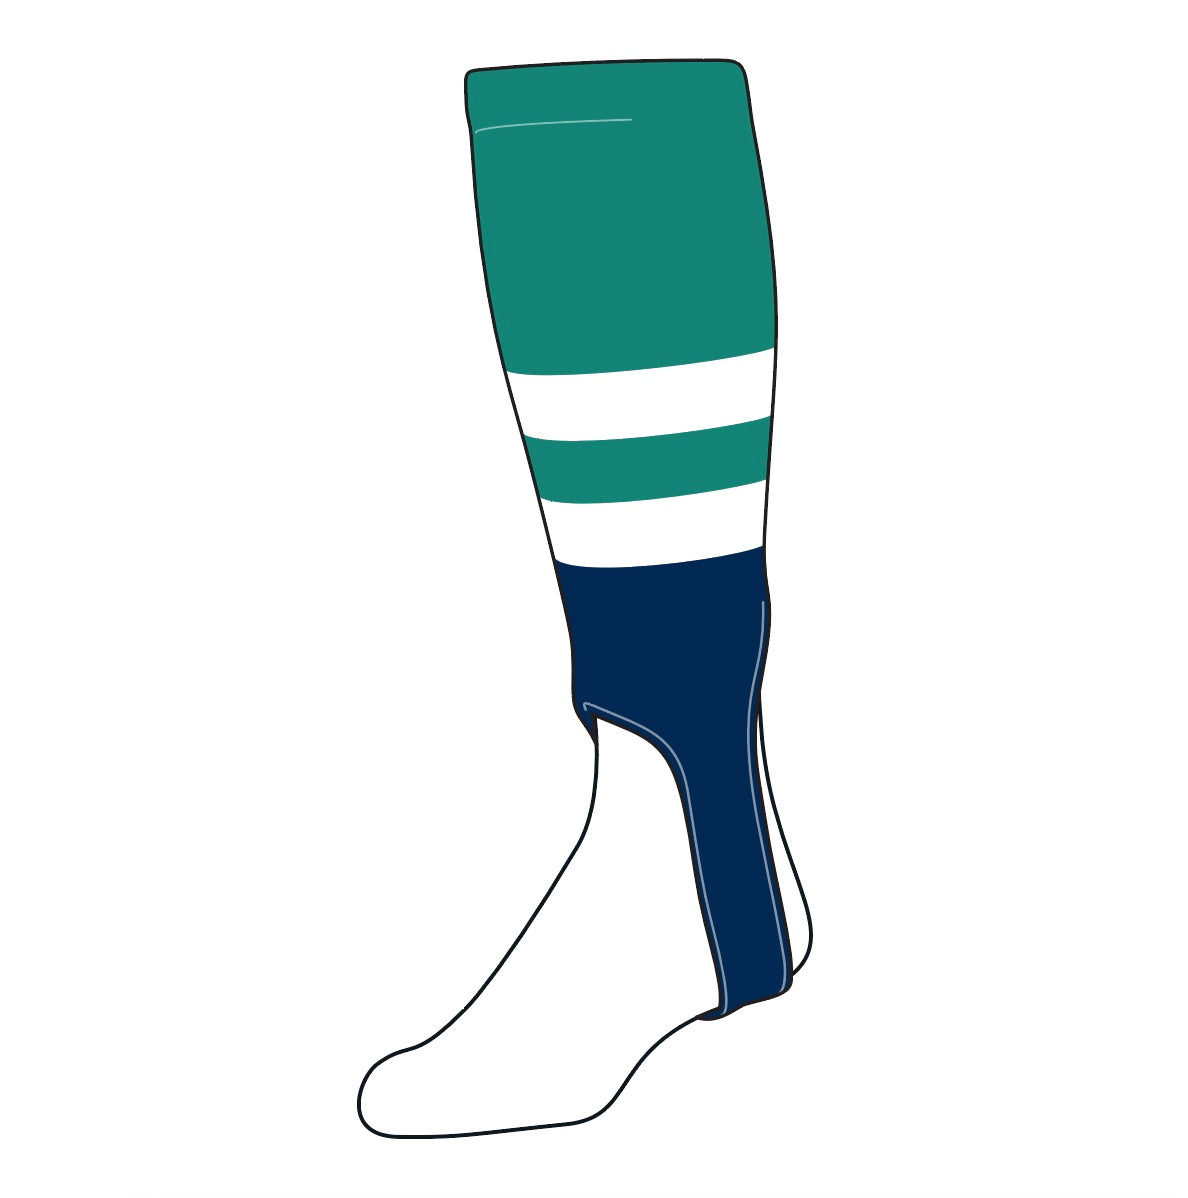 TCK Baseball Stirrups Medium (200G, 5in) Teal, White, Navy